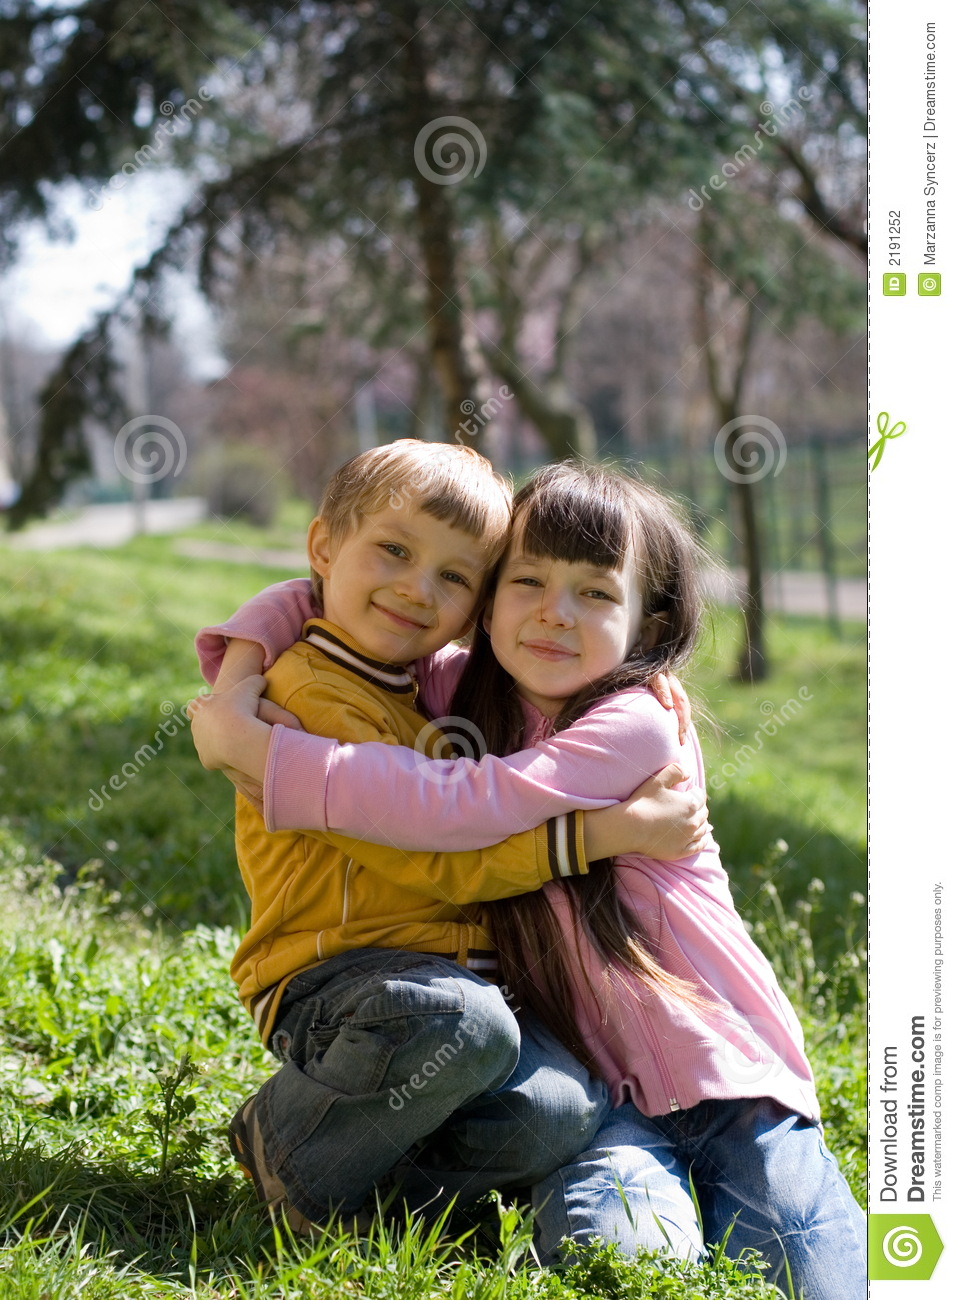 Stock Image Dreamstime Two Children Hugging Stock Photography Image 2191252